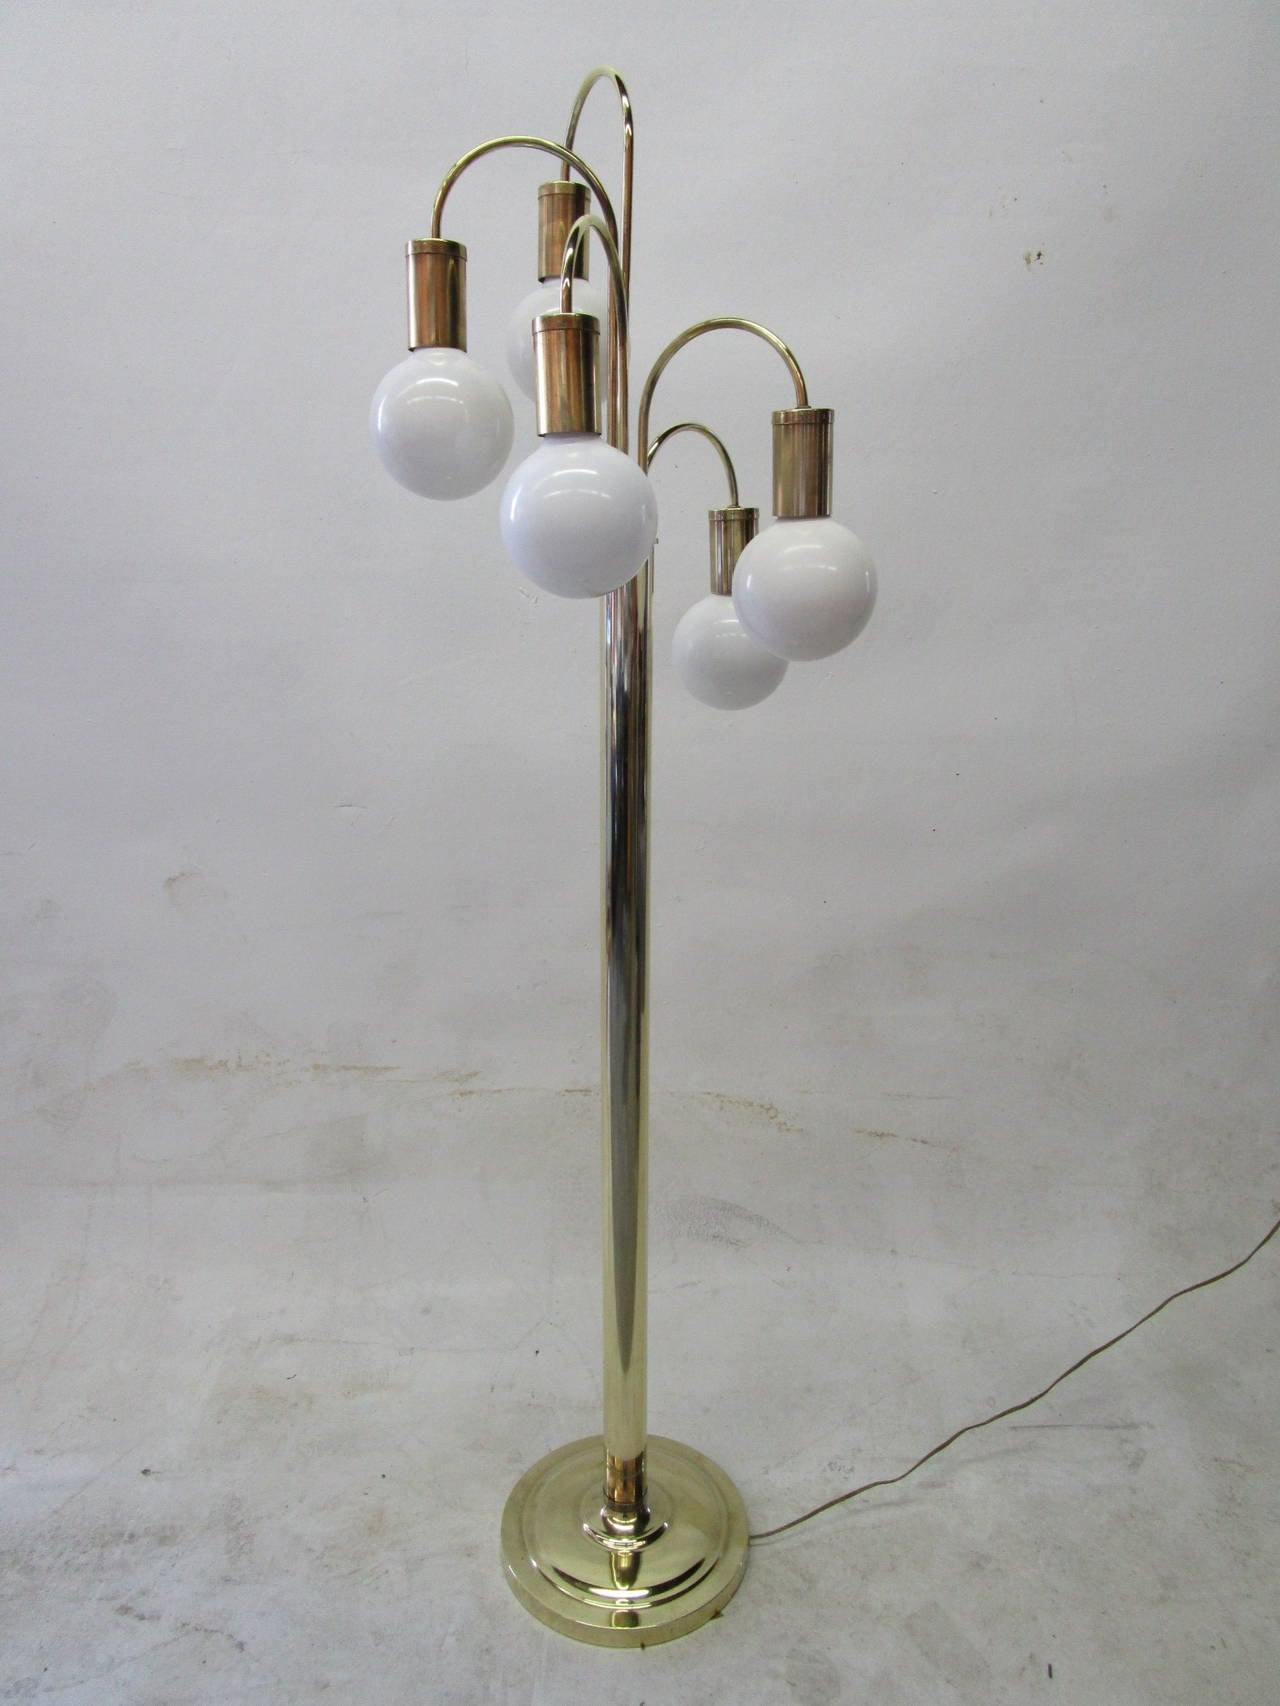 Five curved branches radiate from the central cylinder in a helix and each ends in an opaque white globe bulb. The lamp is operated by a dimming dial that controls the intensity of the light.